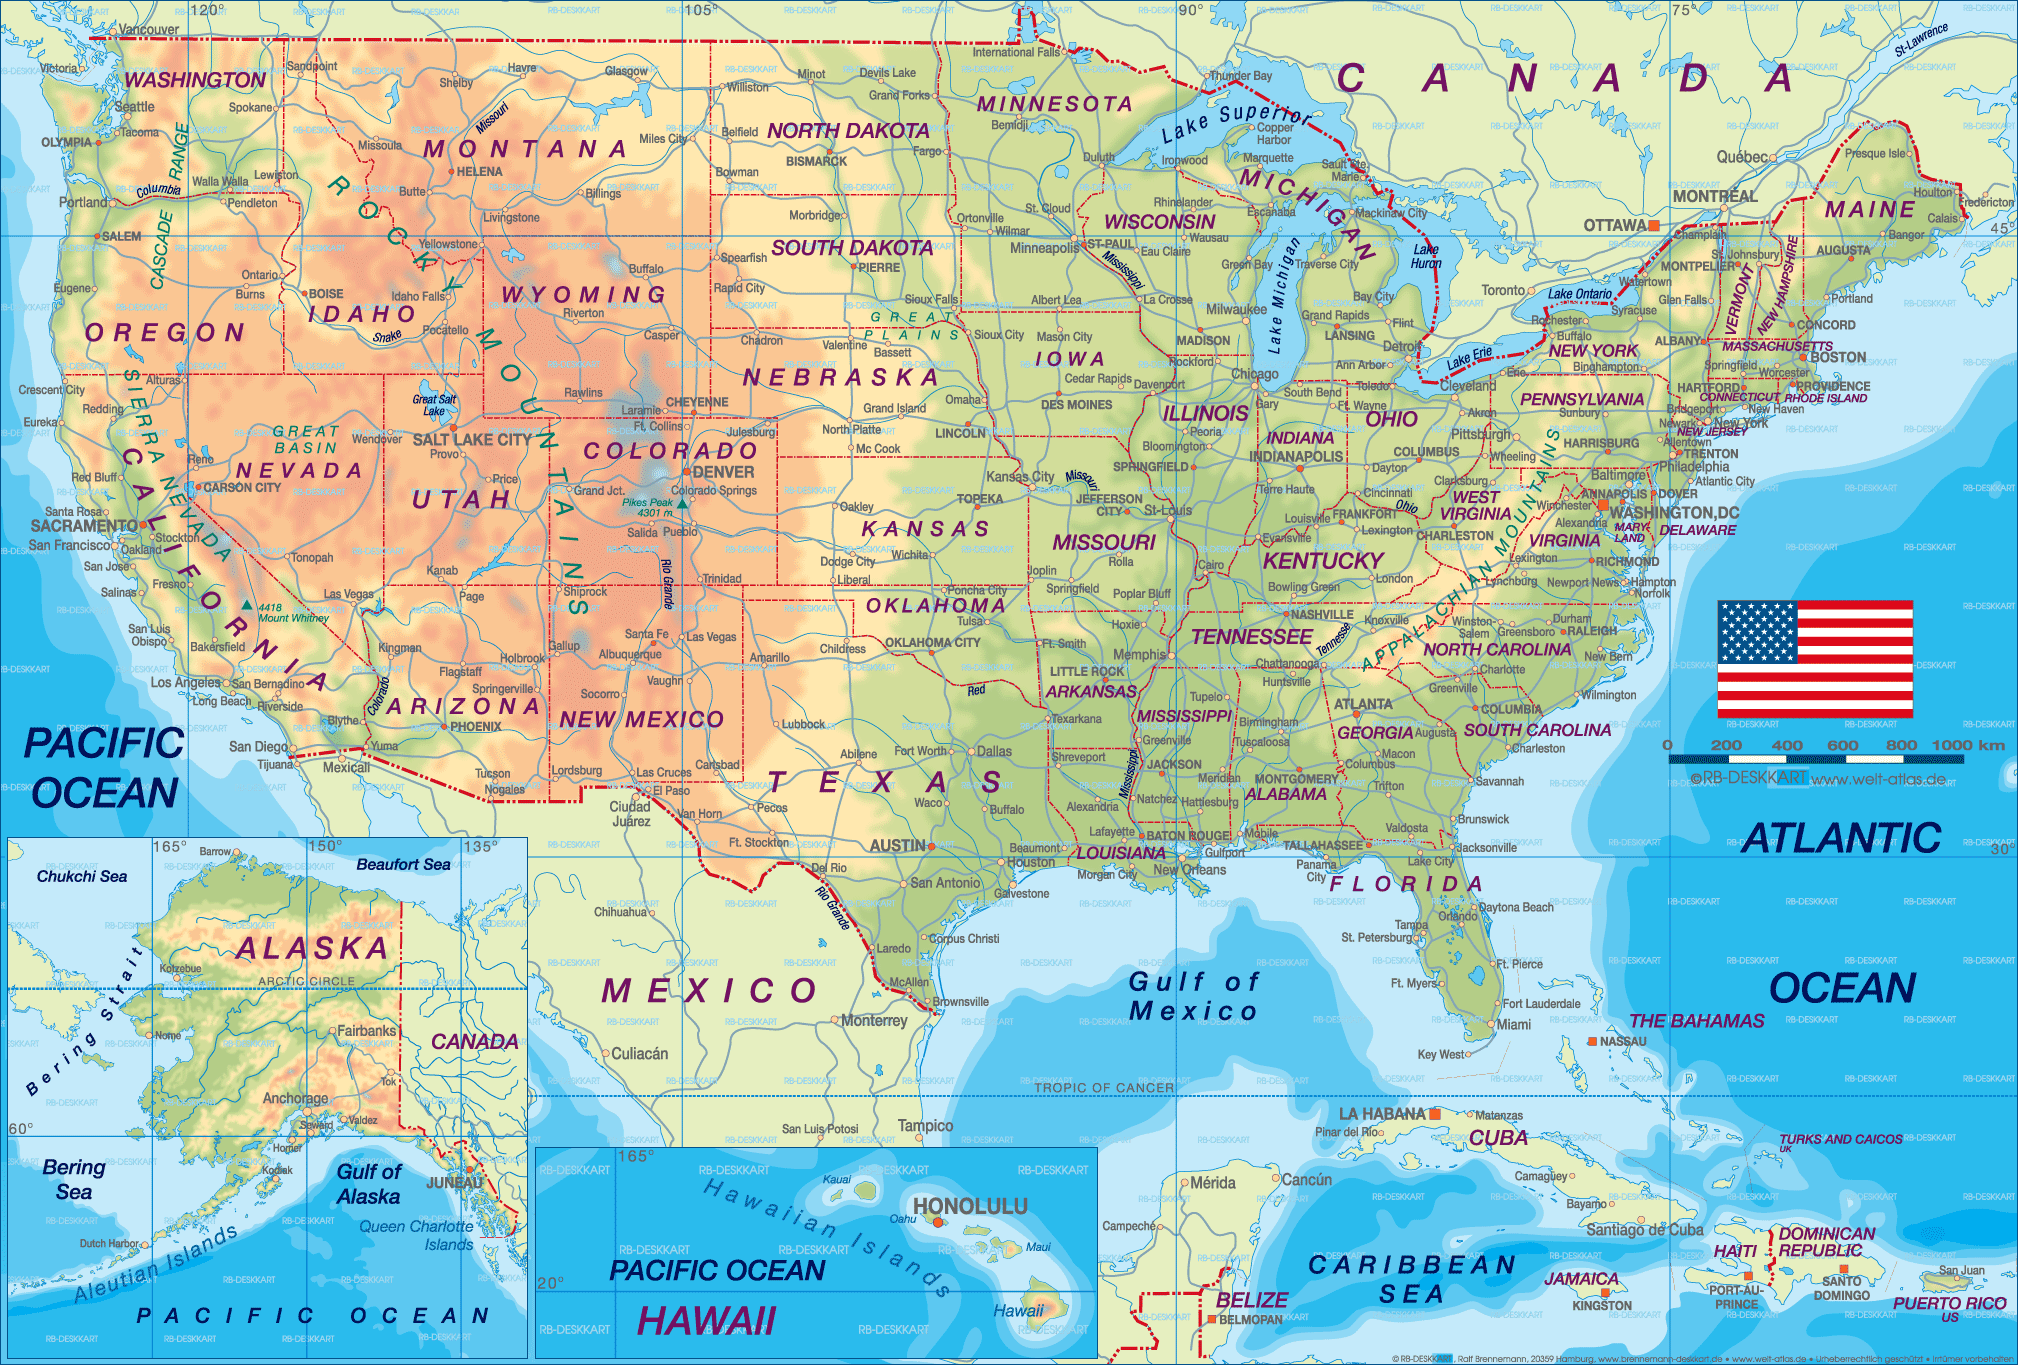 Mapsofnetuploadsstaticmapsunitedstatescitie - Usa map with cities and states